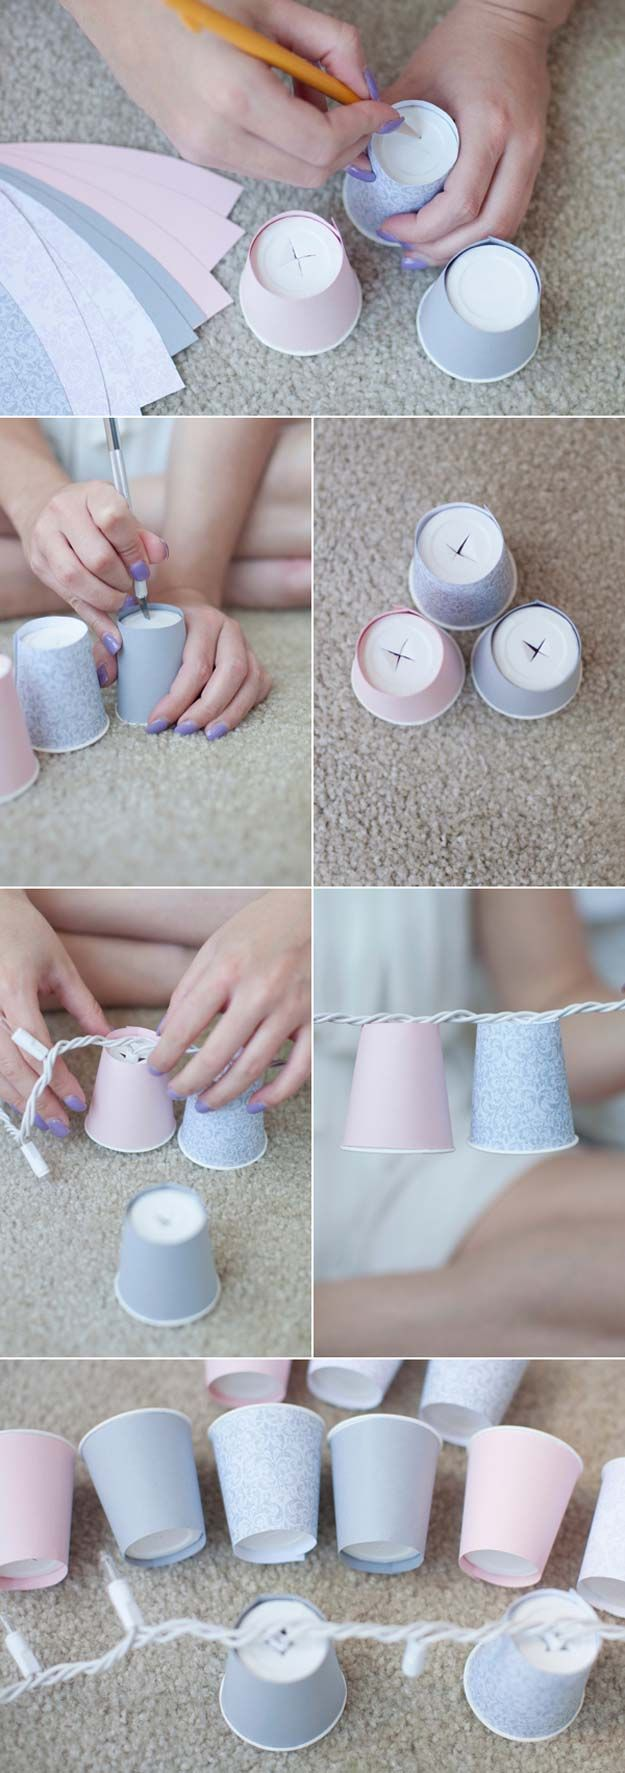 Top 25 ideas about dorm room crafts on pinterest diy for Cool crafts for your room